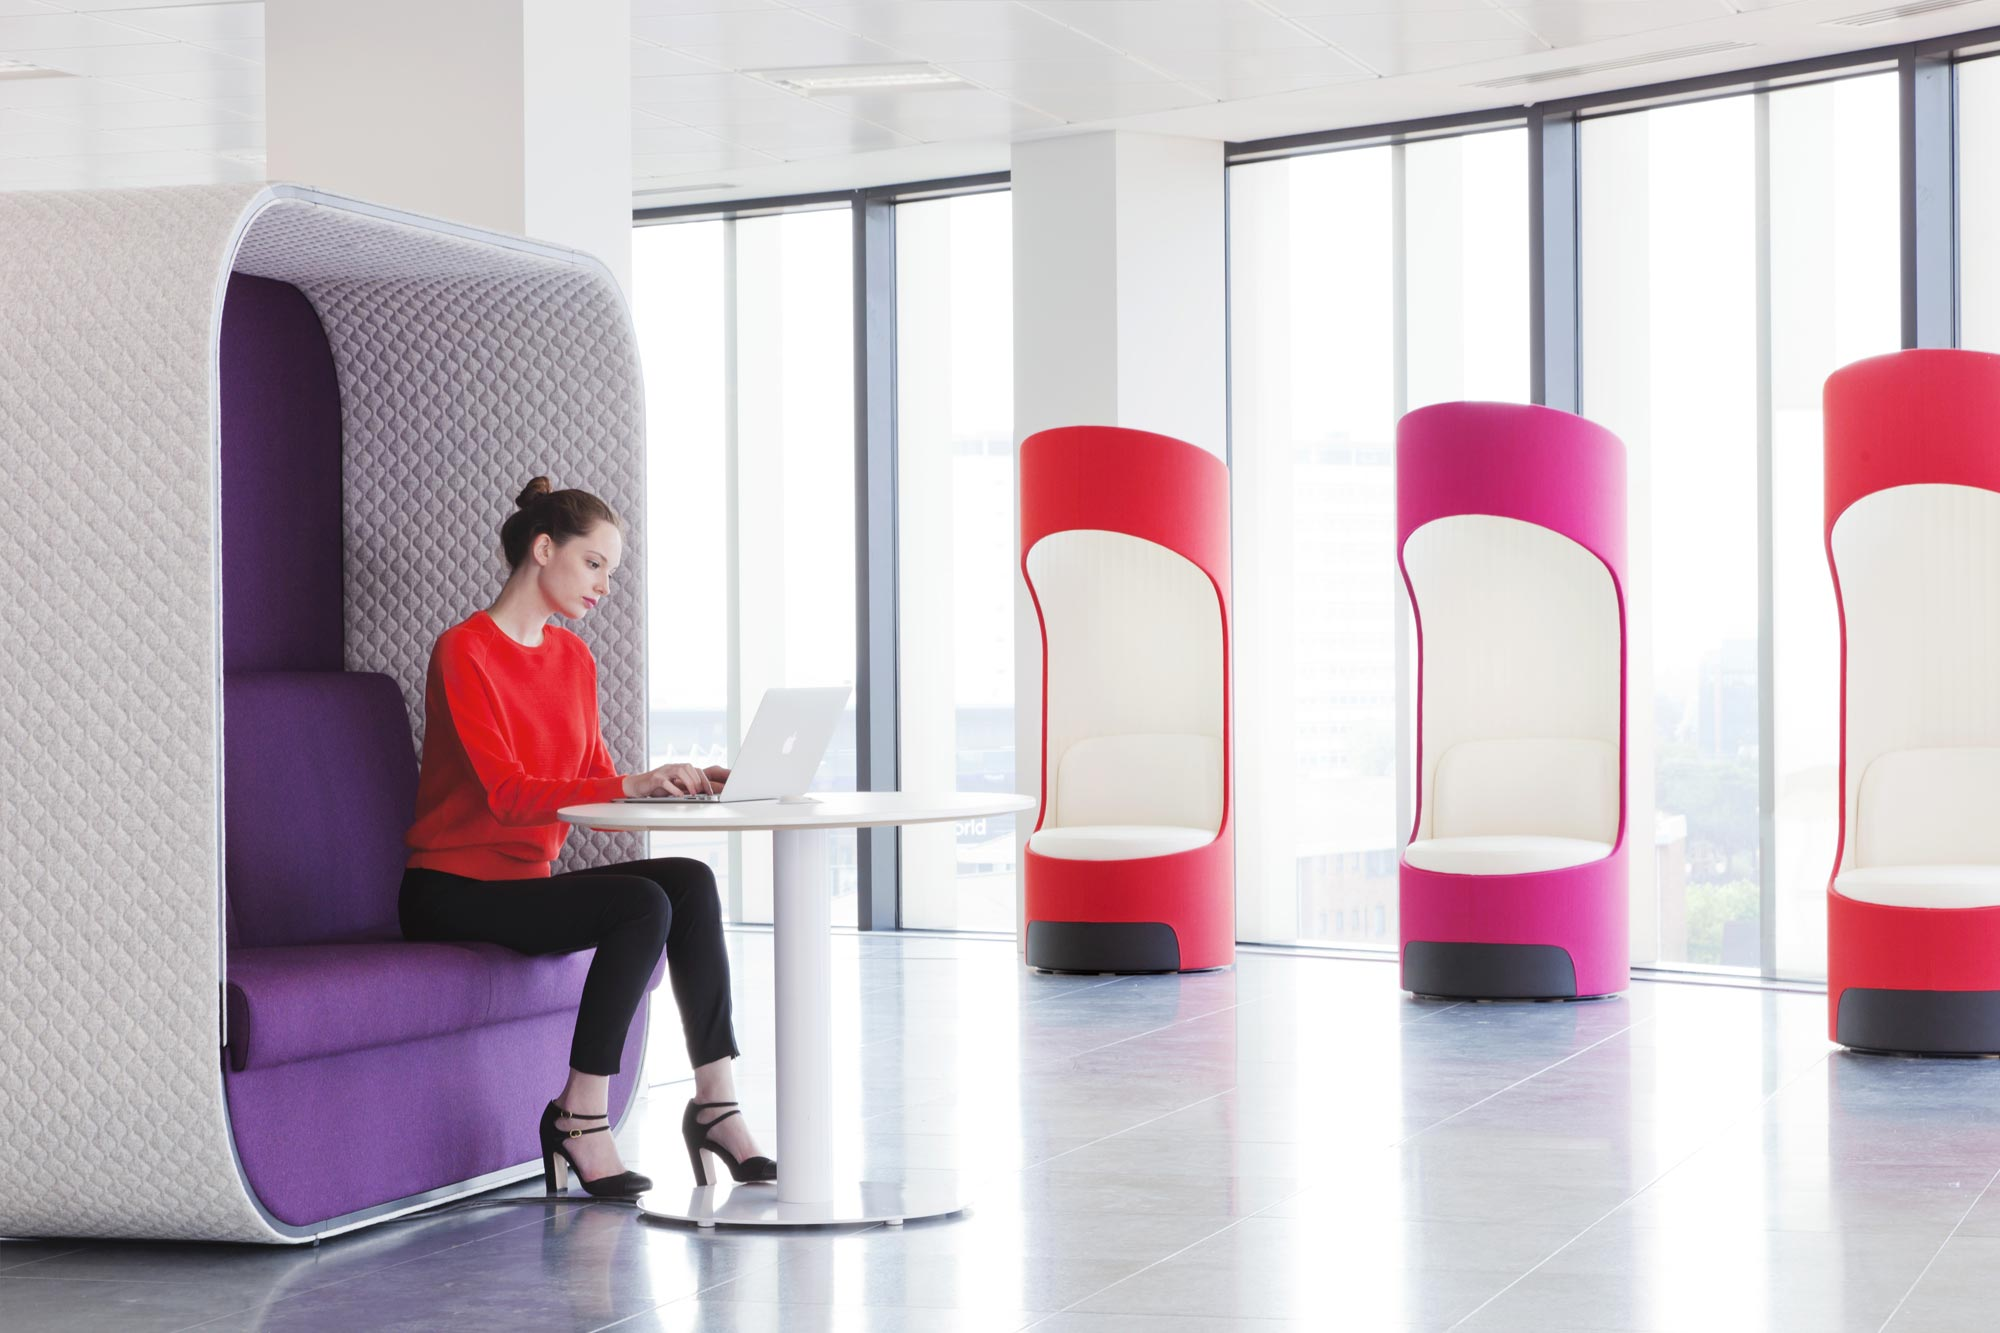 Strikinga balance between privacy and accessibility, these pieces are attractive,comfortable and the perfect places to hunker downwith your team.